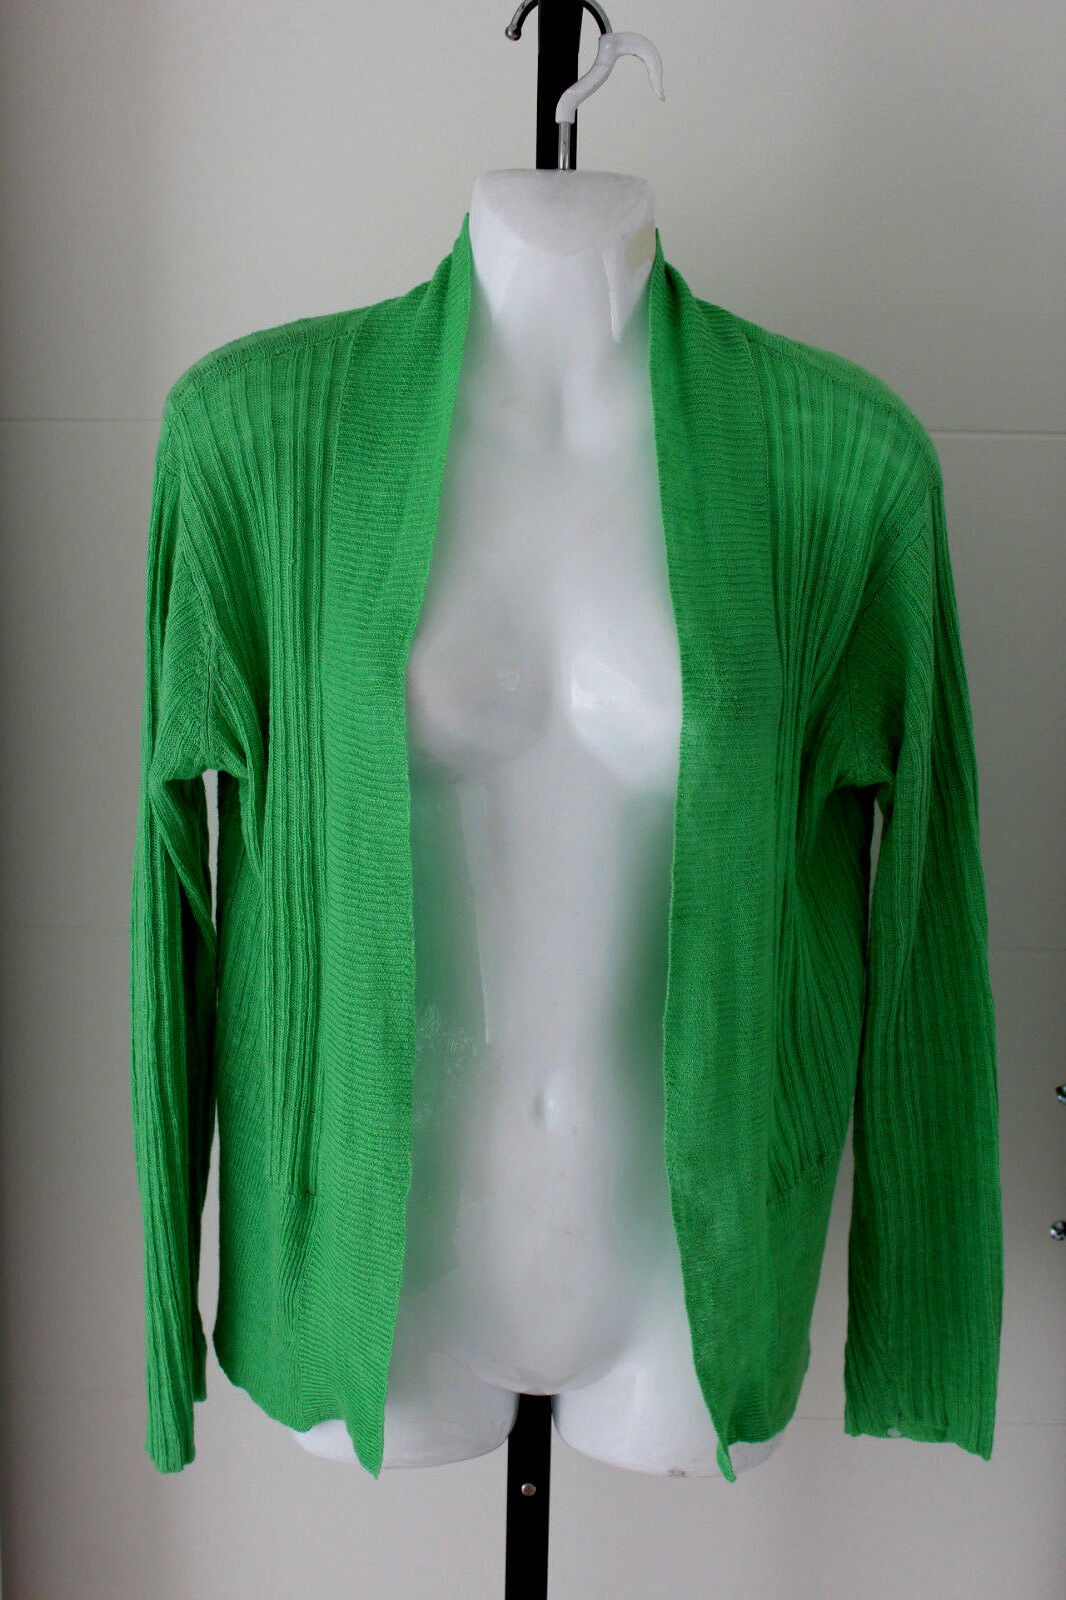 Eileen Fisher NWOT NWOT NWOT green 100% linen long sleeve open front cardigan size M L 4cbb12